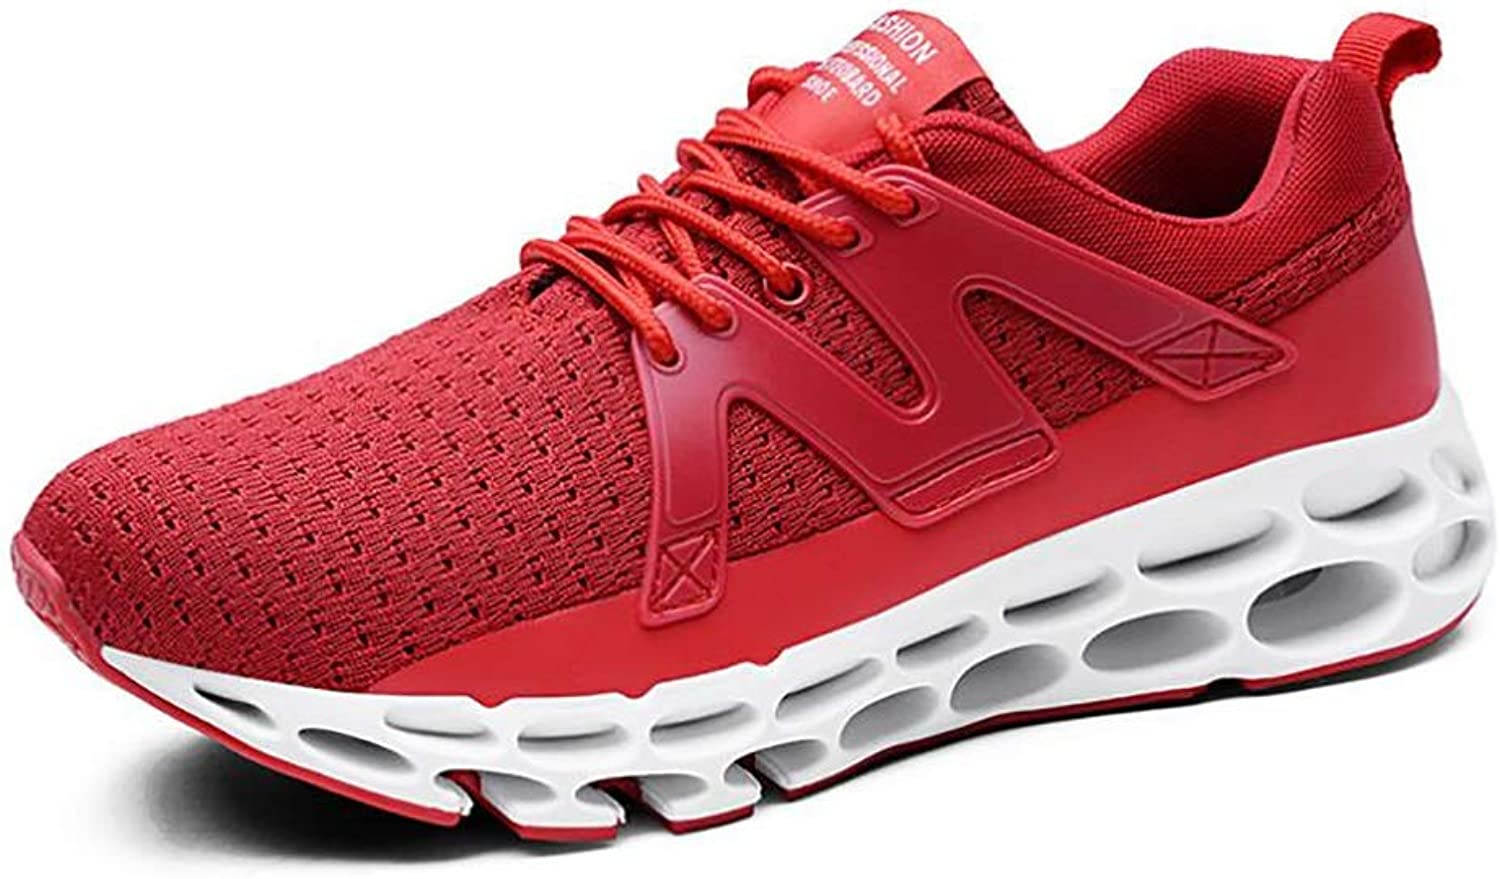 Men's Sneakers, Spring Fall Knit shoes,Non Slip Shockproof Running shoes, Fashion Casual Lace-up Sports shoes, Running shoes